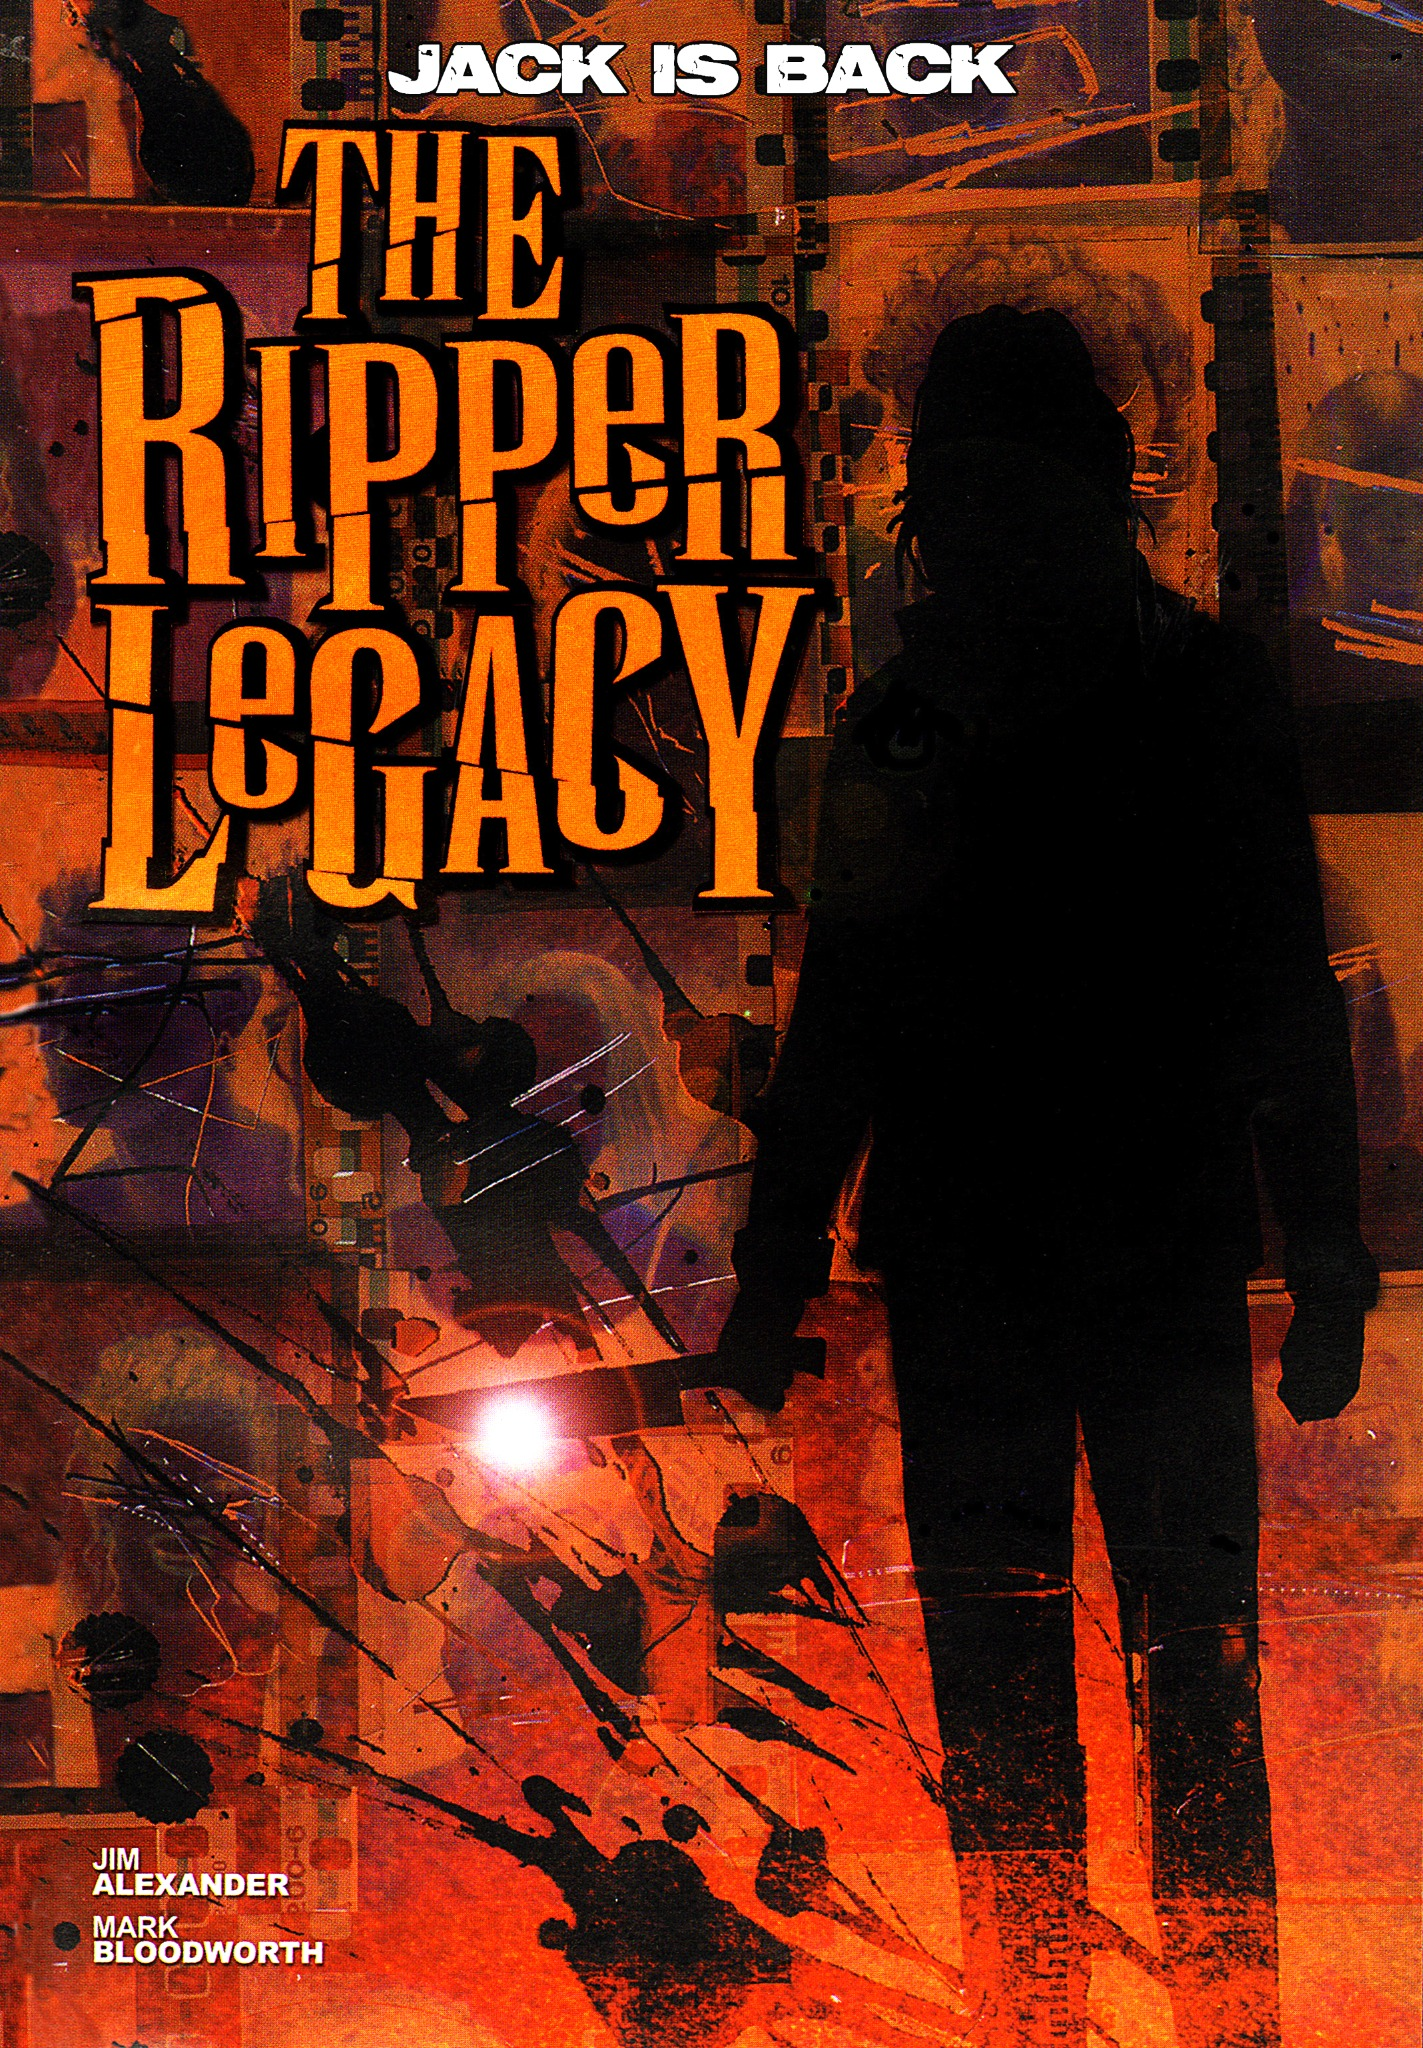 The Ripper Legecy